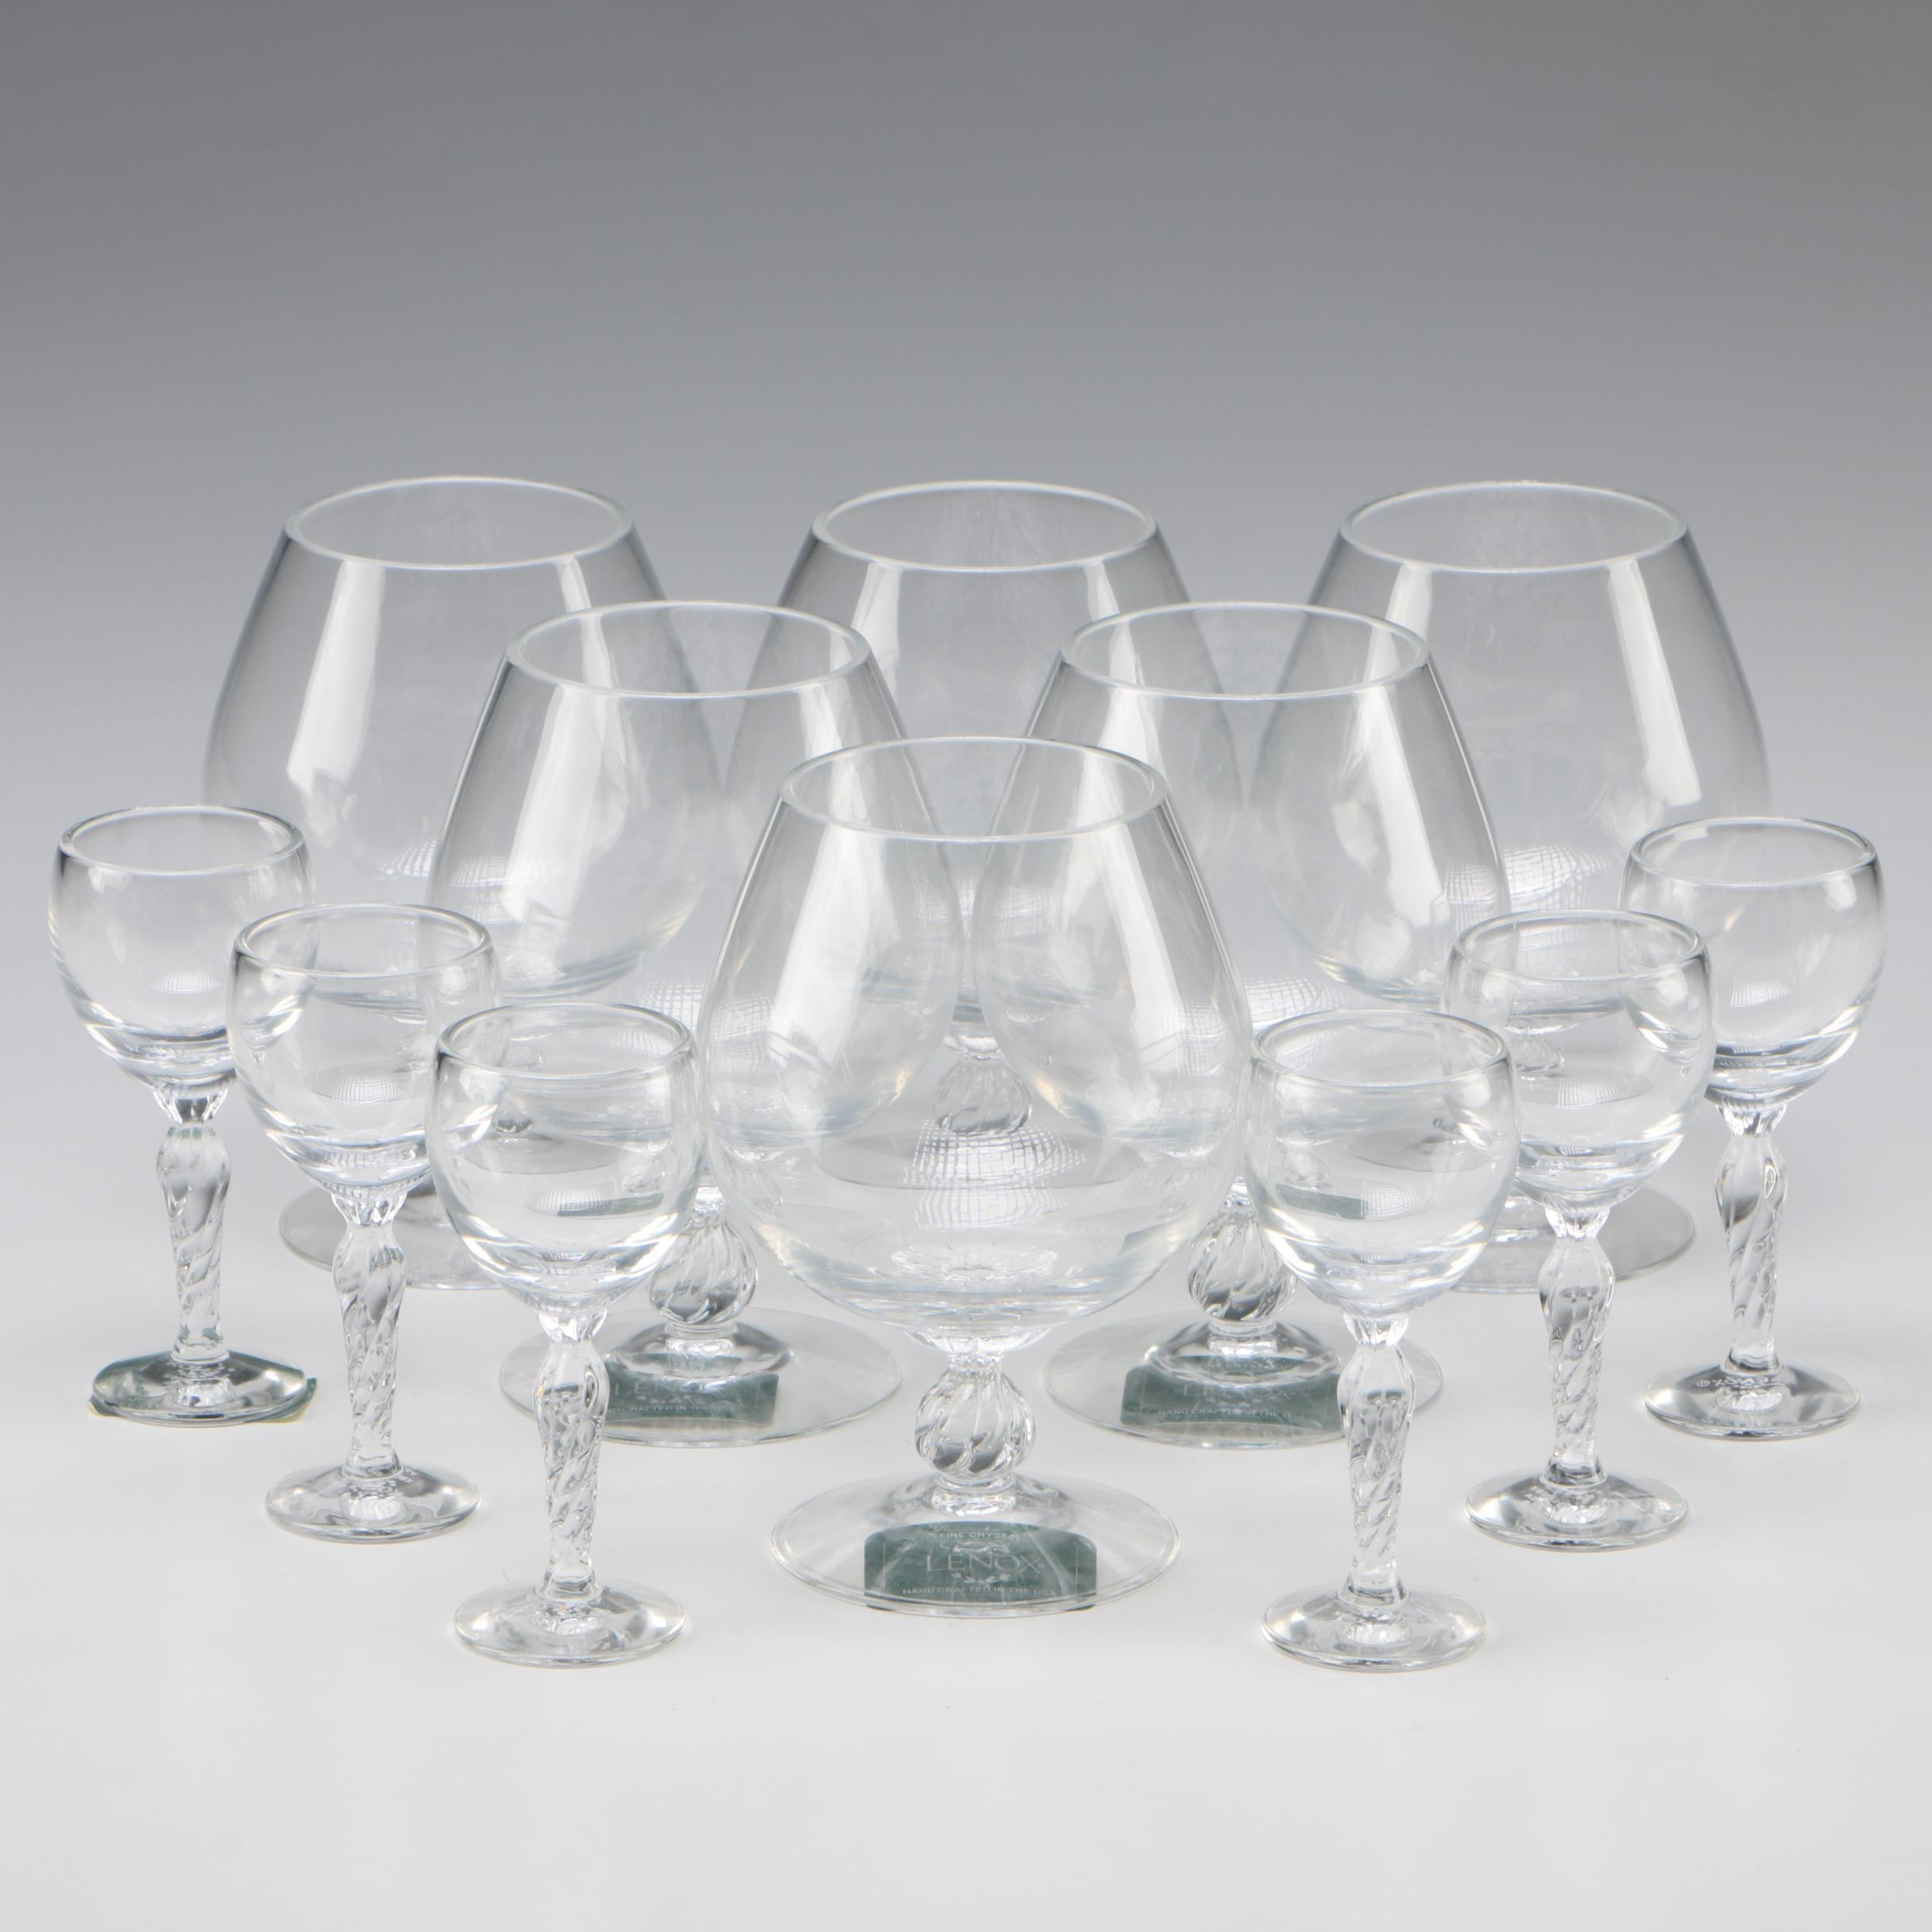 "Lenox Crystal ""Aria"" Brandy Snifters and Cordials, Late 20th/Early 21st Century"